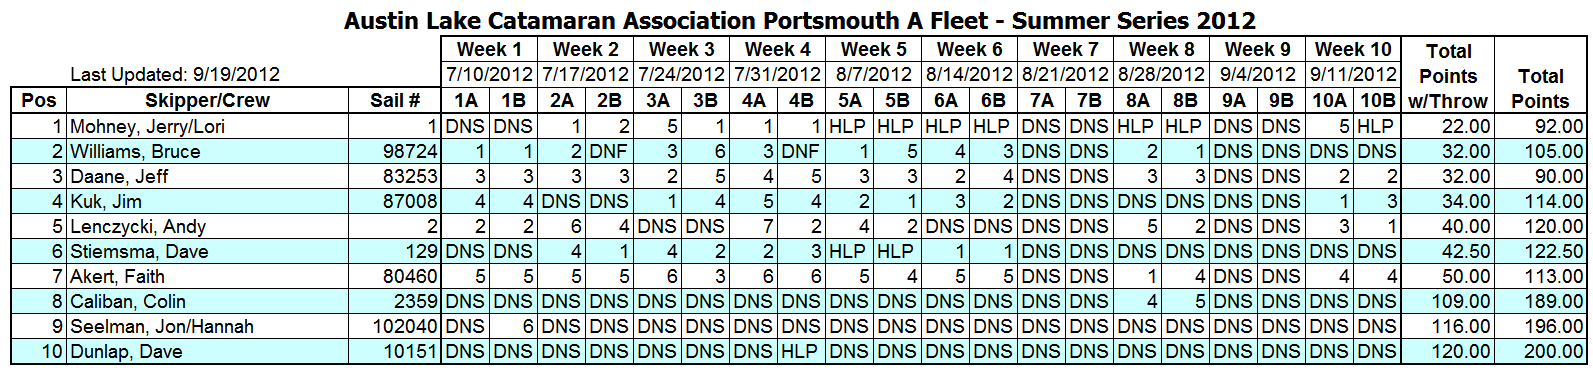 2012 Summer Portsmouth A Fleet Results